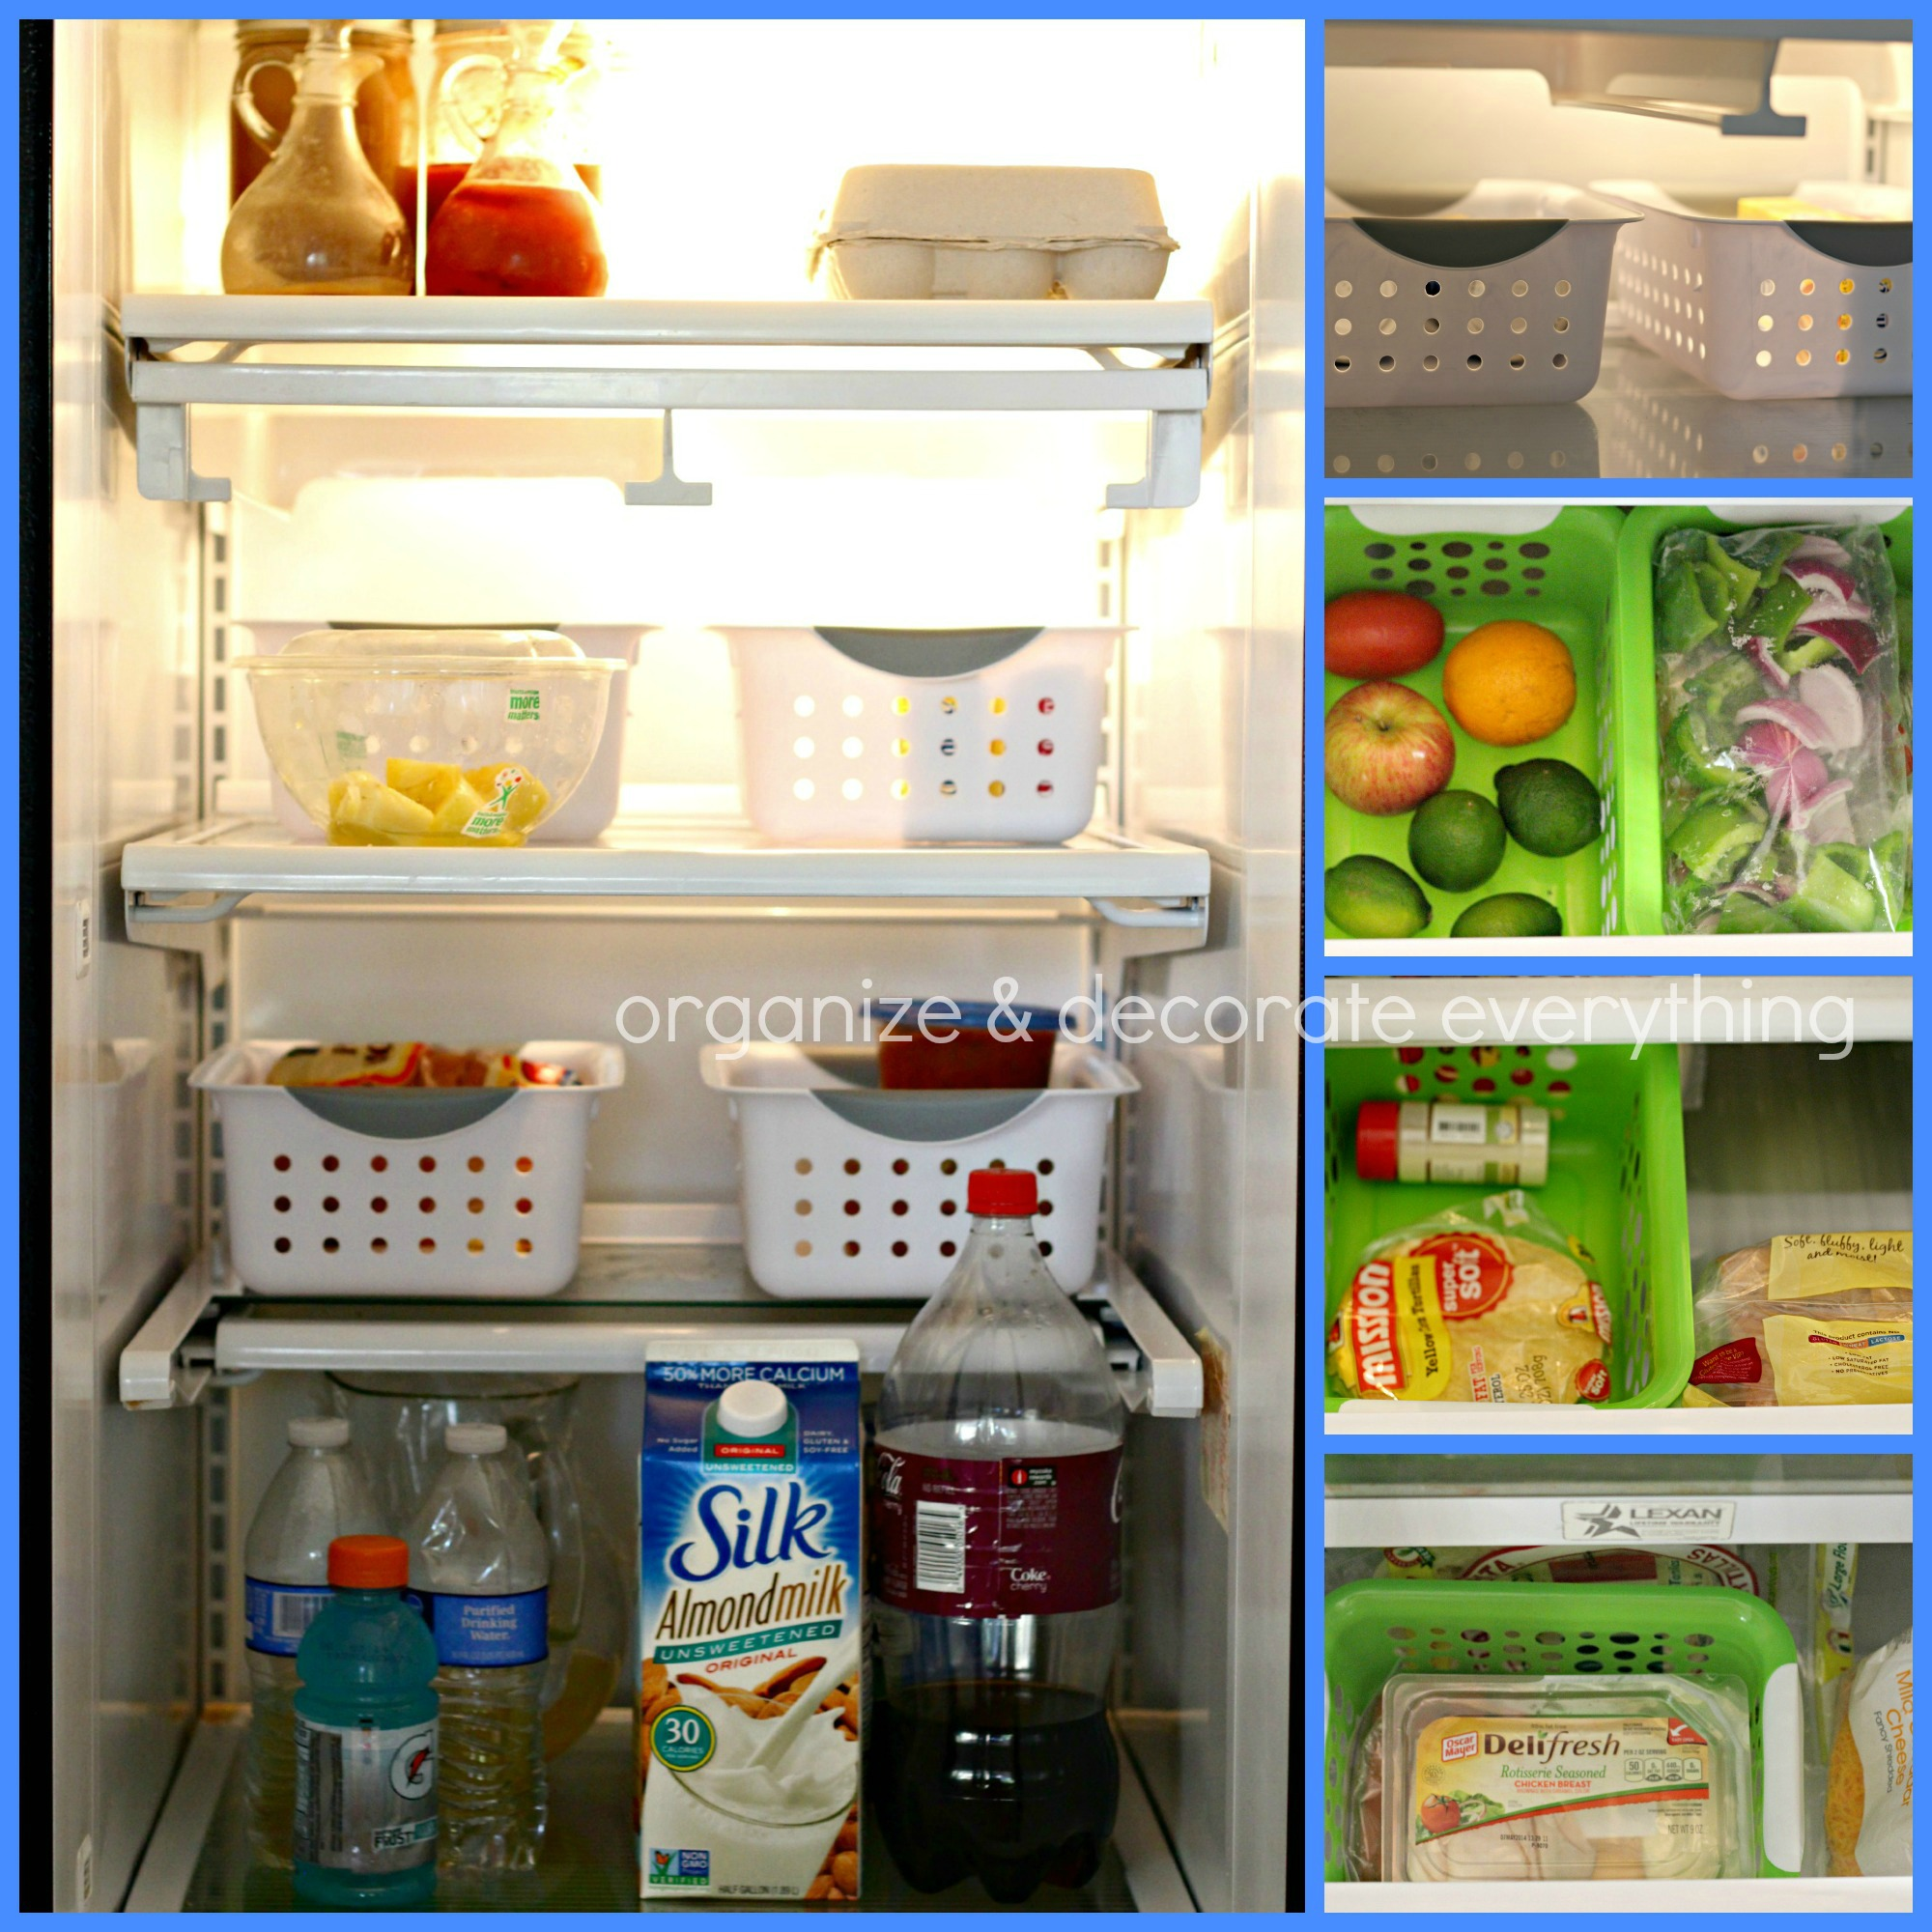 How To Organize My Kitchen Cabinets Organize The Kitchen With Dollar General Organize And